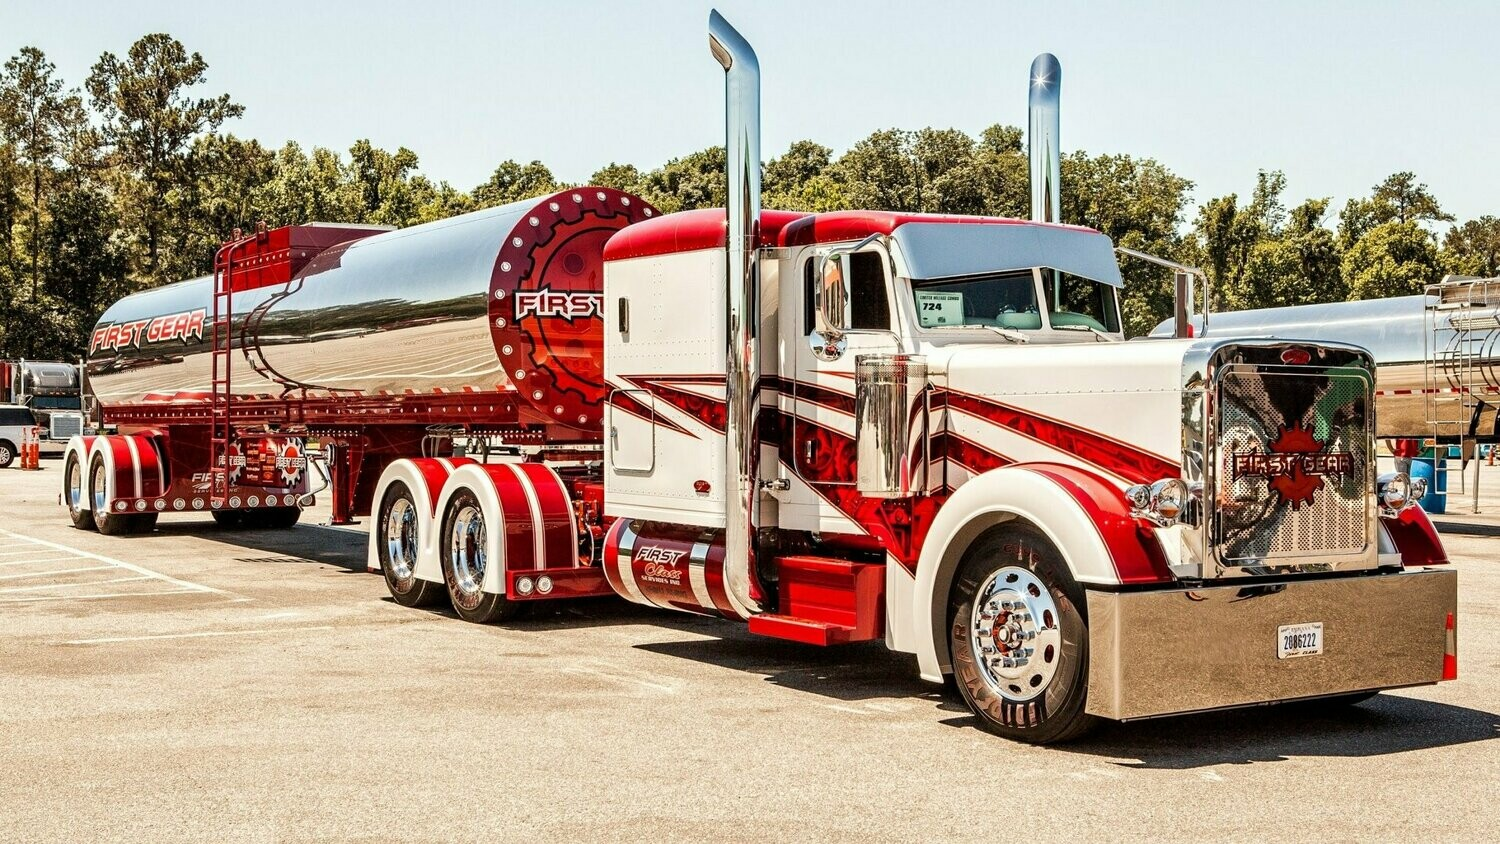 Big Trucks 06 - Full Drill Diamond Painting - Specially ordered for you. Delivery is approximately 4 - 6 weeks.